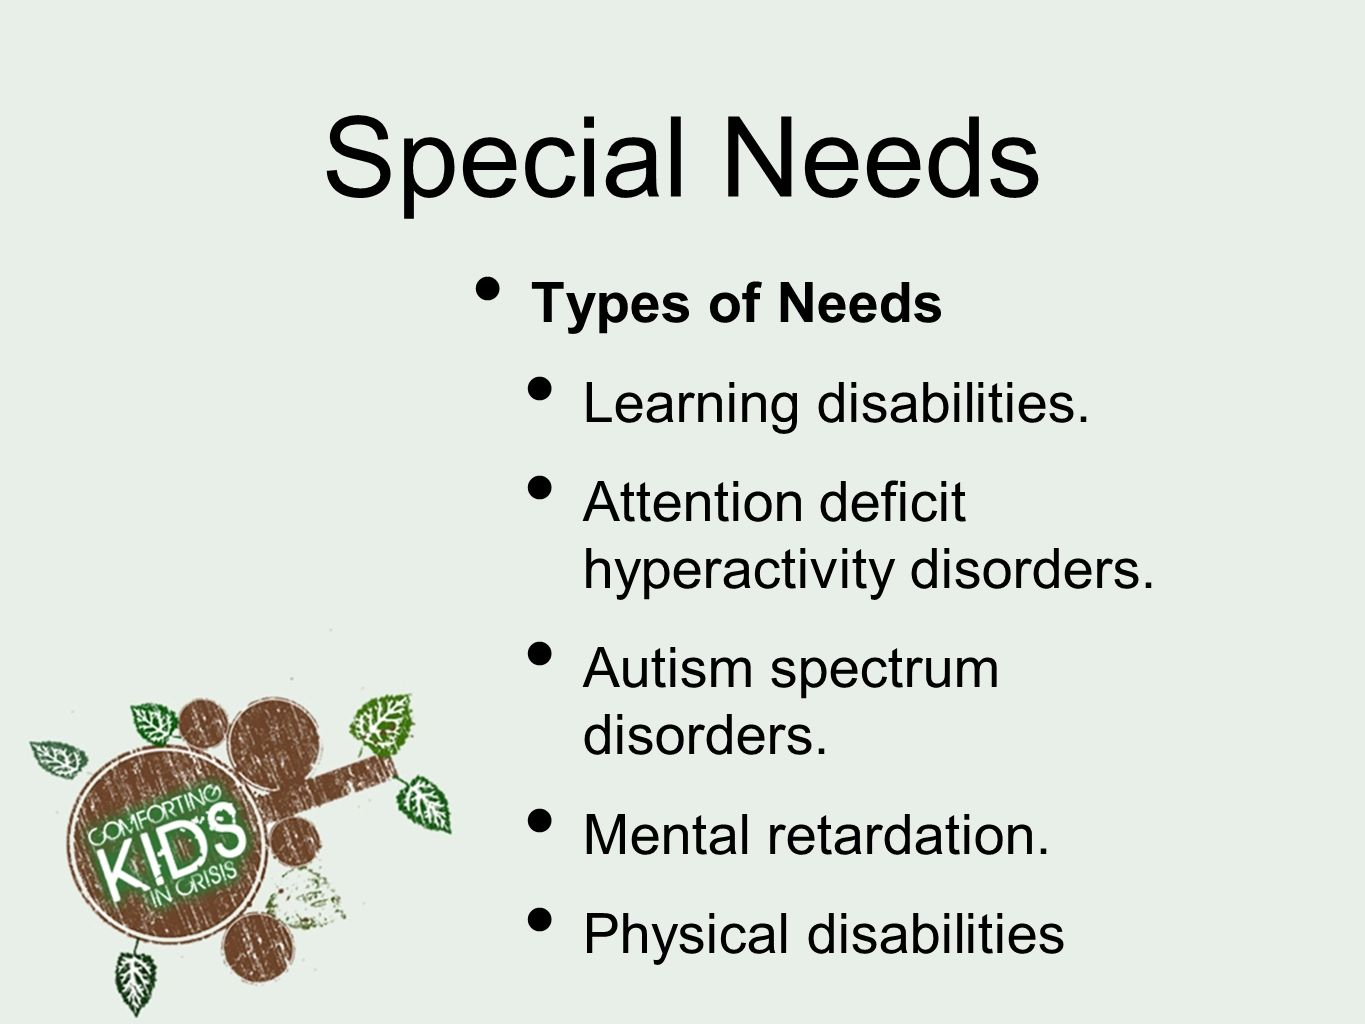 Special Needs Types of Needs Learning disabilities. Attention deficit hyperactivity disorders. Autism spectrum disorders. Mental retardation. Physical